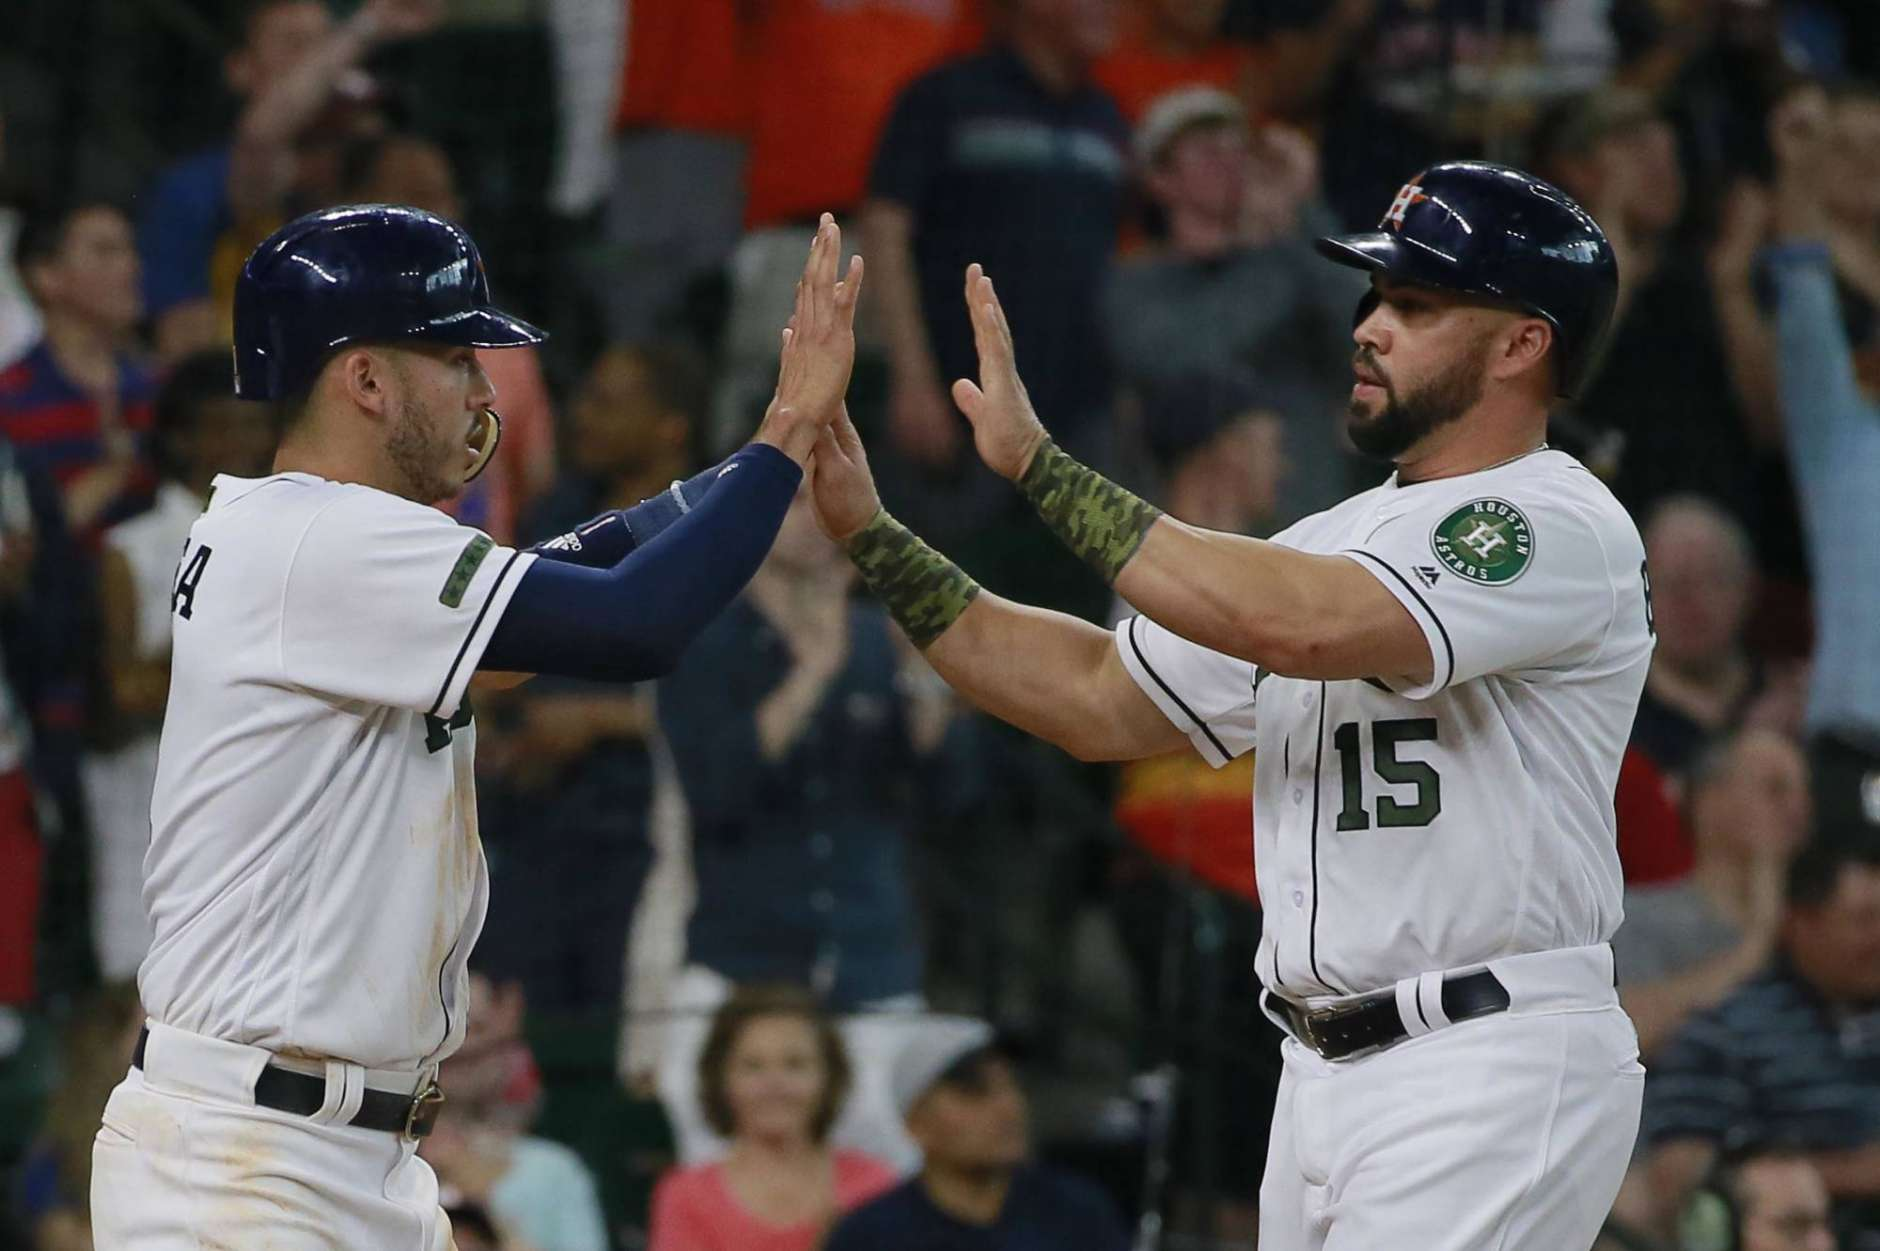 Houston Astros' Carlos Correa, left, greets teammate Carlos Beltran at home as the pair scored against the Baltimore Orioles in the second inning of a baseball game Sunday, May 28, 2017, in Houston. (AP Photo/Richard Carson)